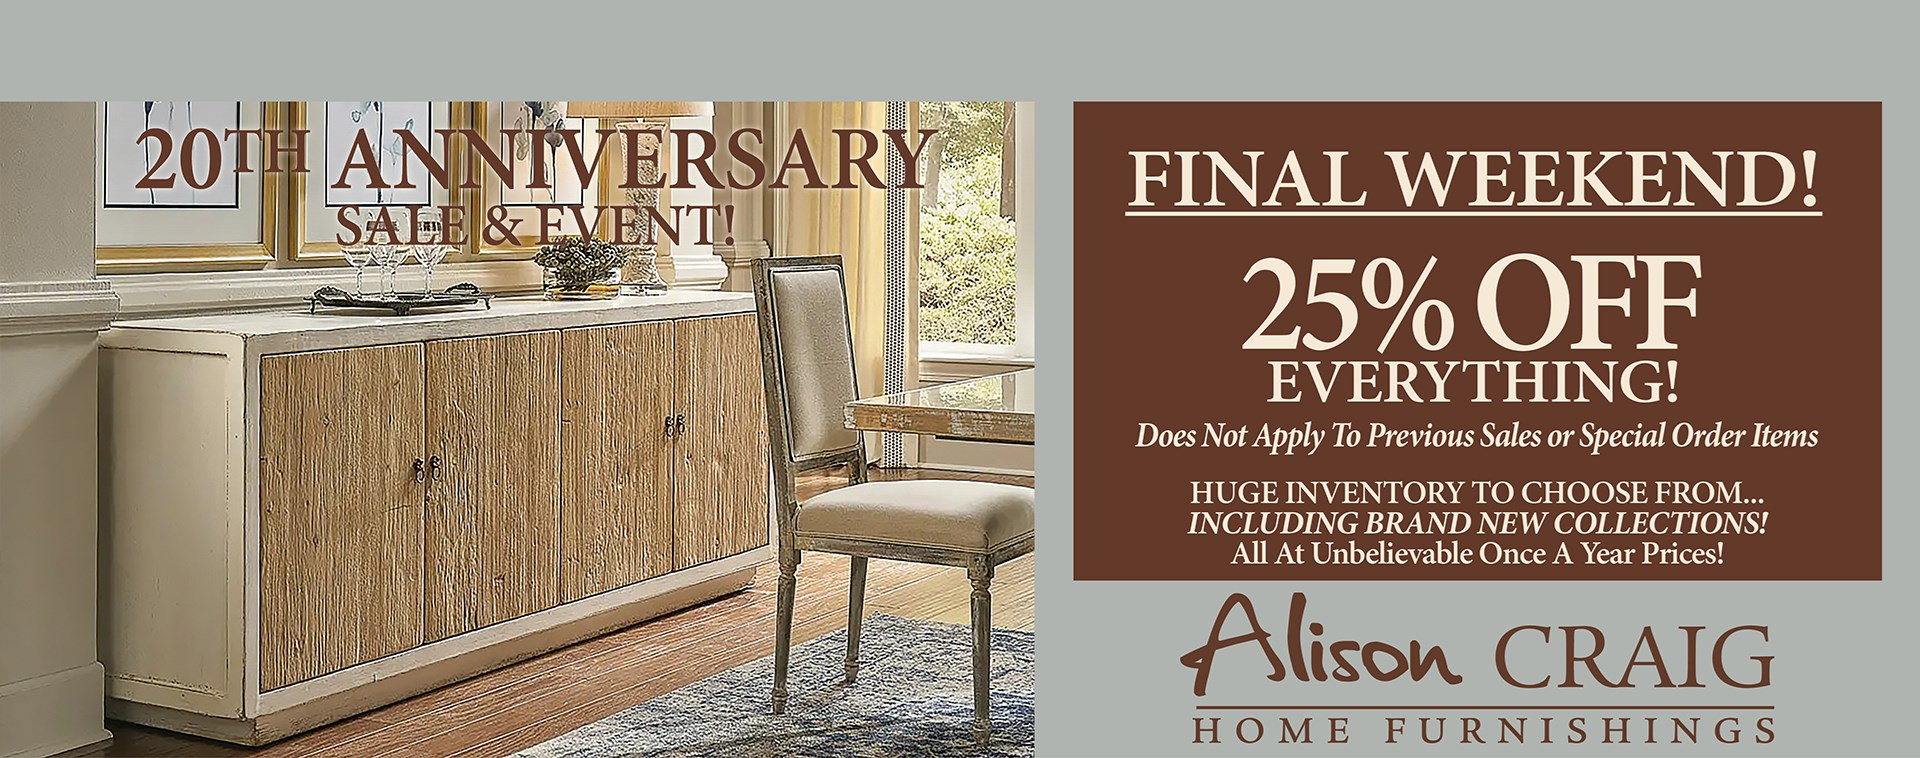 FINAL WEEKEND - 20th Anniversary - 25% OFF EVERYTHING!